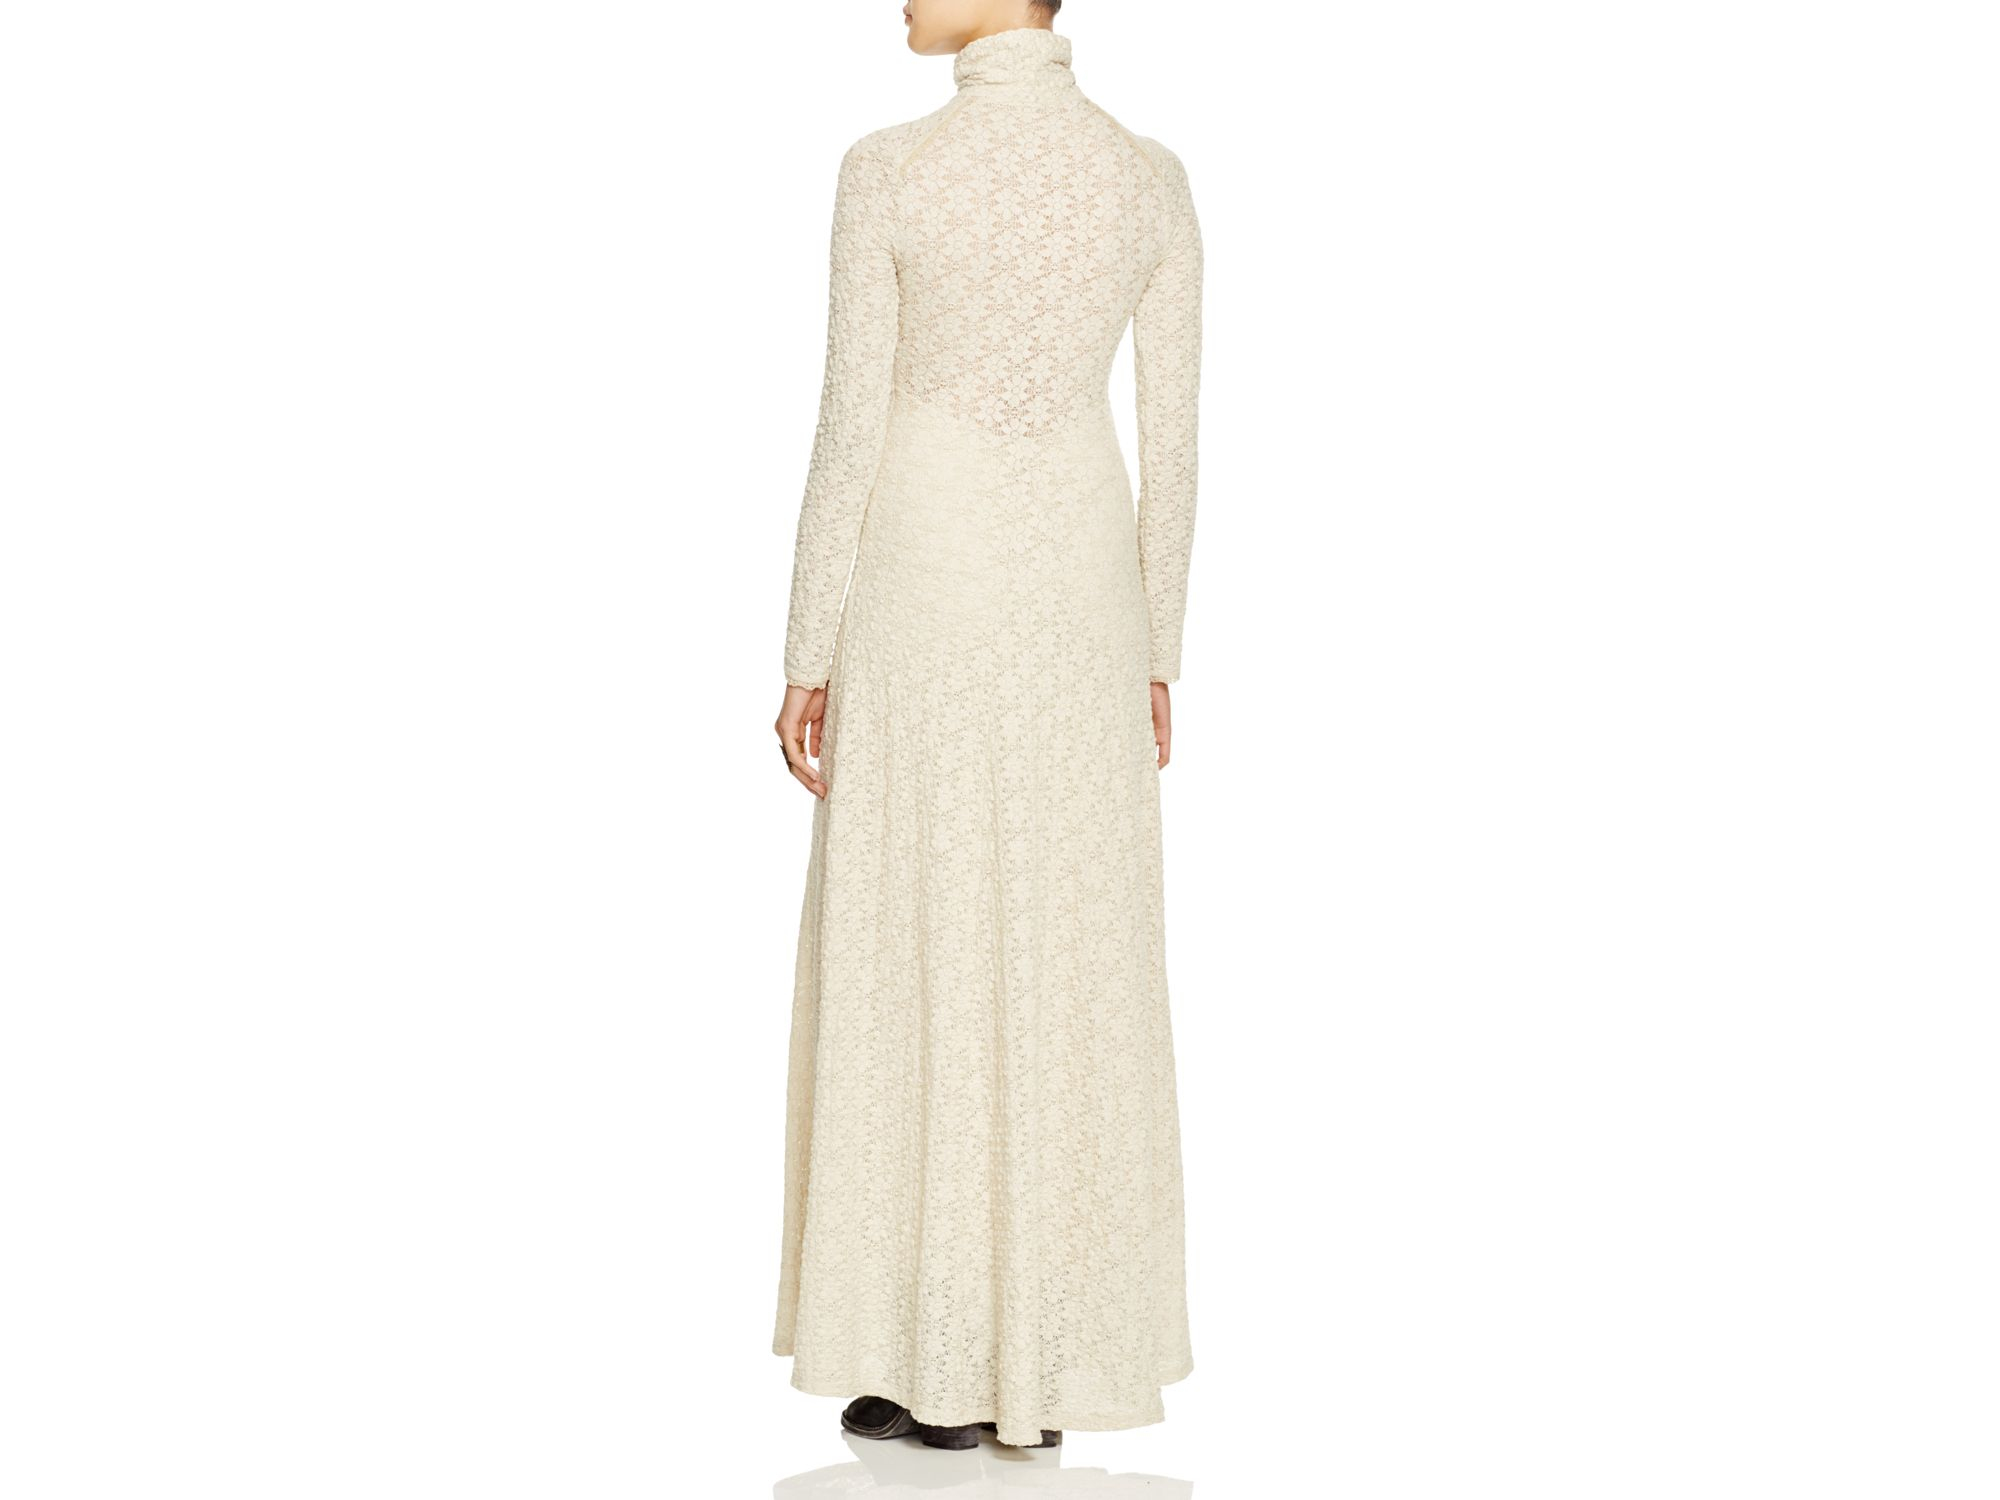 71297464310 Free People White River Lace Maxi Dress in Brown - Lyst